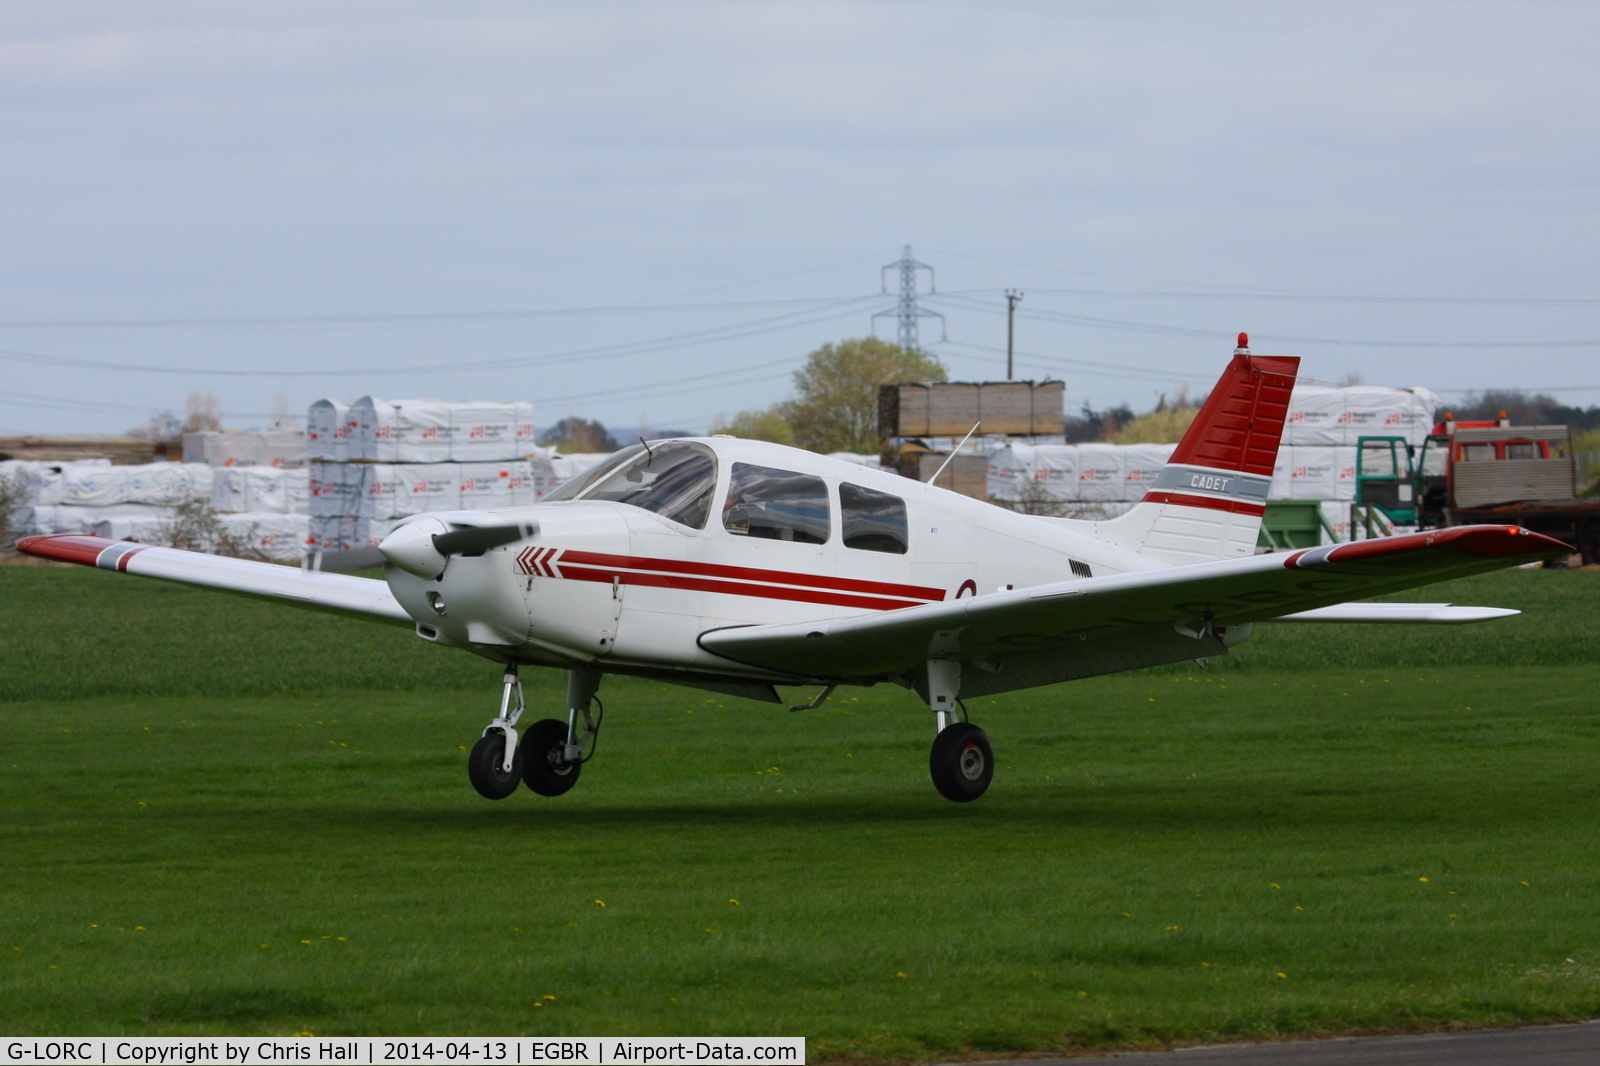 G-LORC, 1992 Piper PA-28-161 Cadet C/N 2841339, at Breighton's 'Early Bird' Fly-in 13/04/14